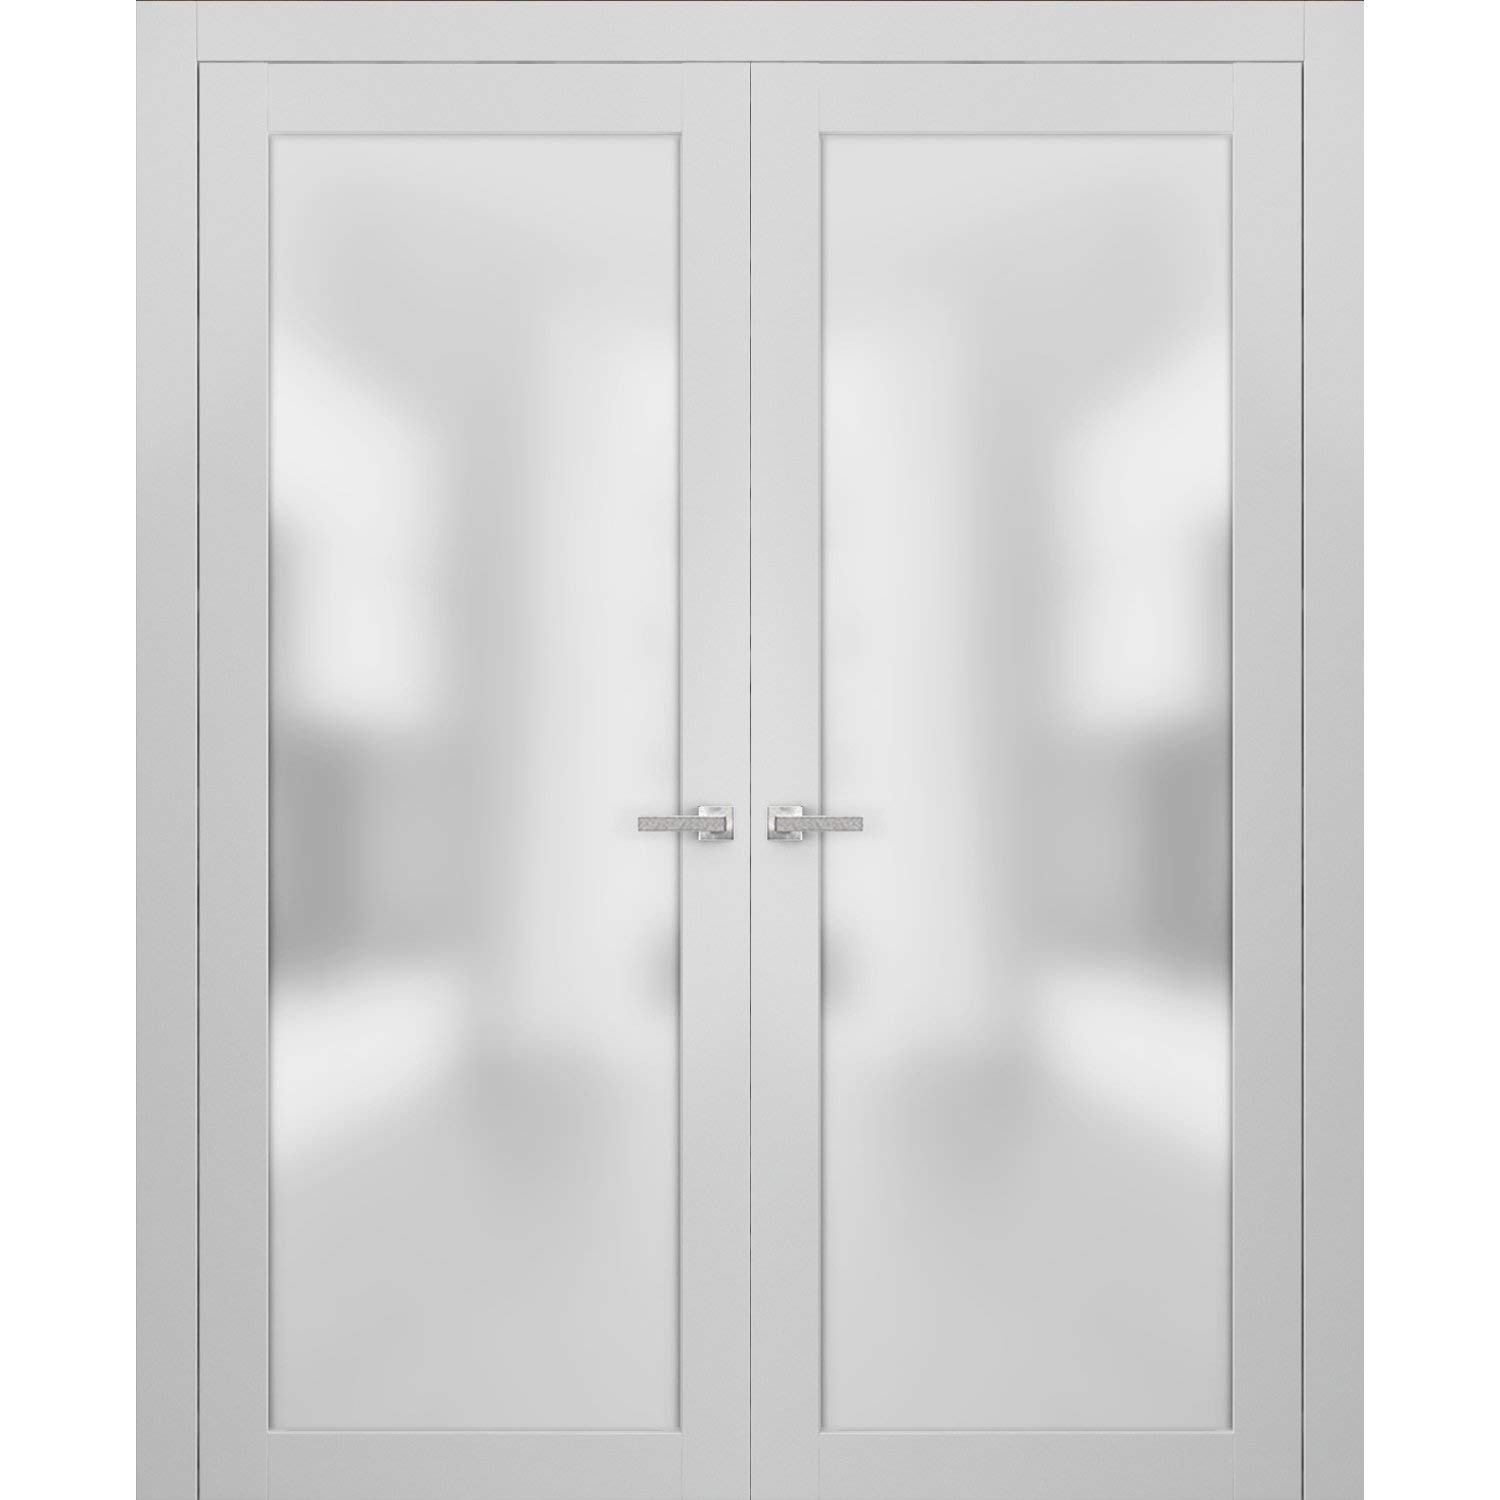 French Double Frosted Glass Doors 64 x 80 | Planum 2102 White Silk | Frames Trims Satin Nickel Hardware | Bedroom Bathroom Solid Core Wooded Panels